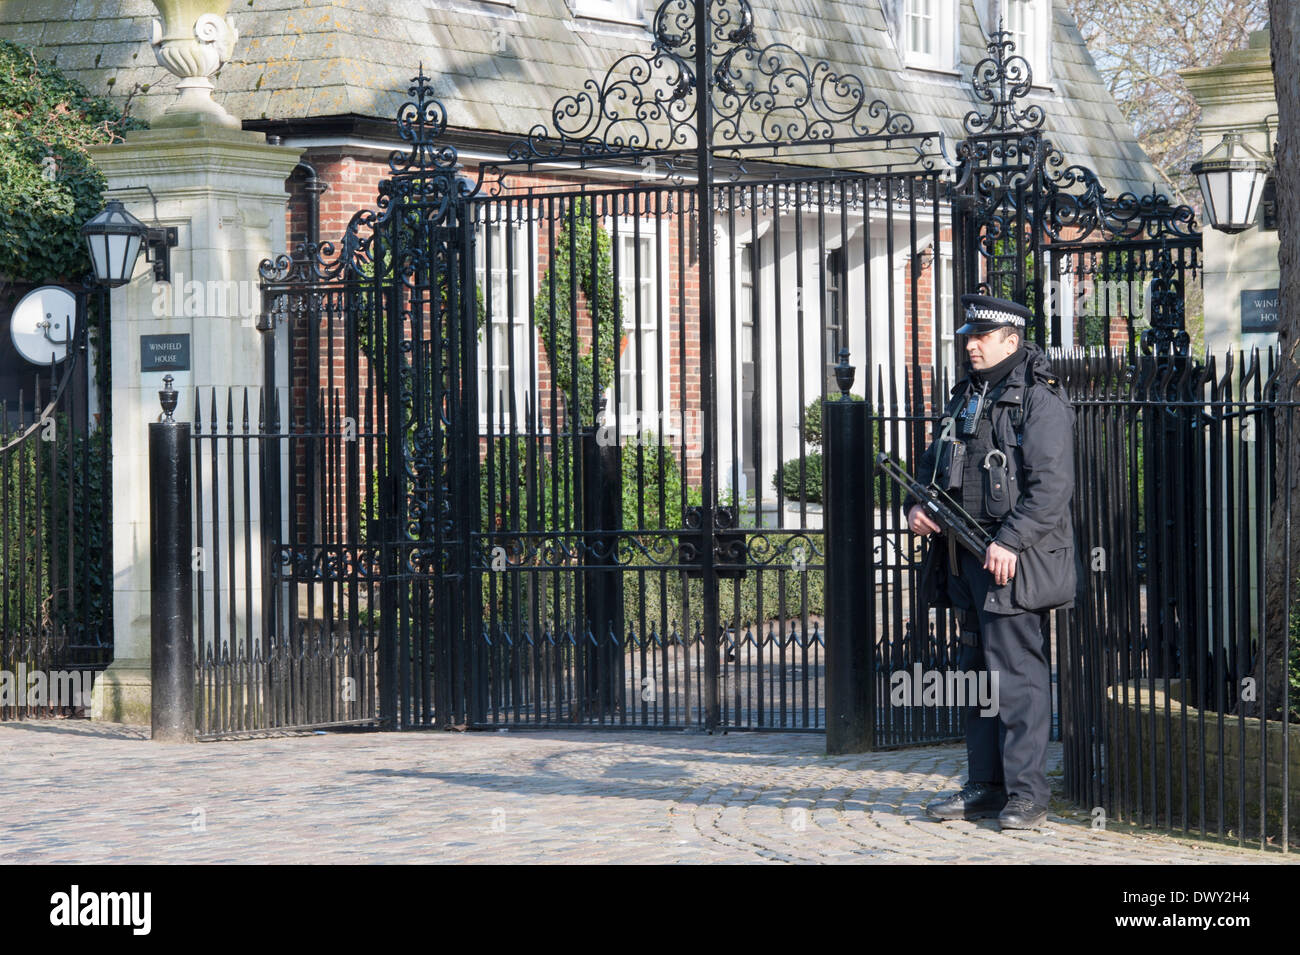 Winfield House, London, UK. 14th March 2014. US Secretary of State John Kerry & Sergei Lavrov hold talks on - Stock Image